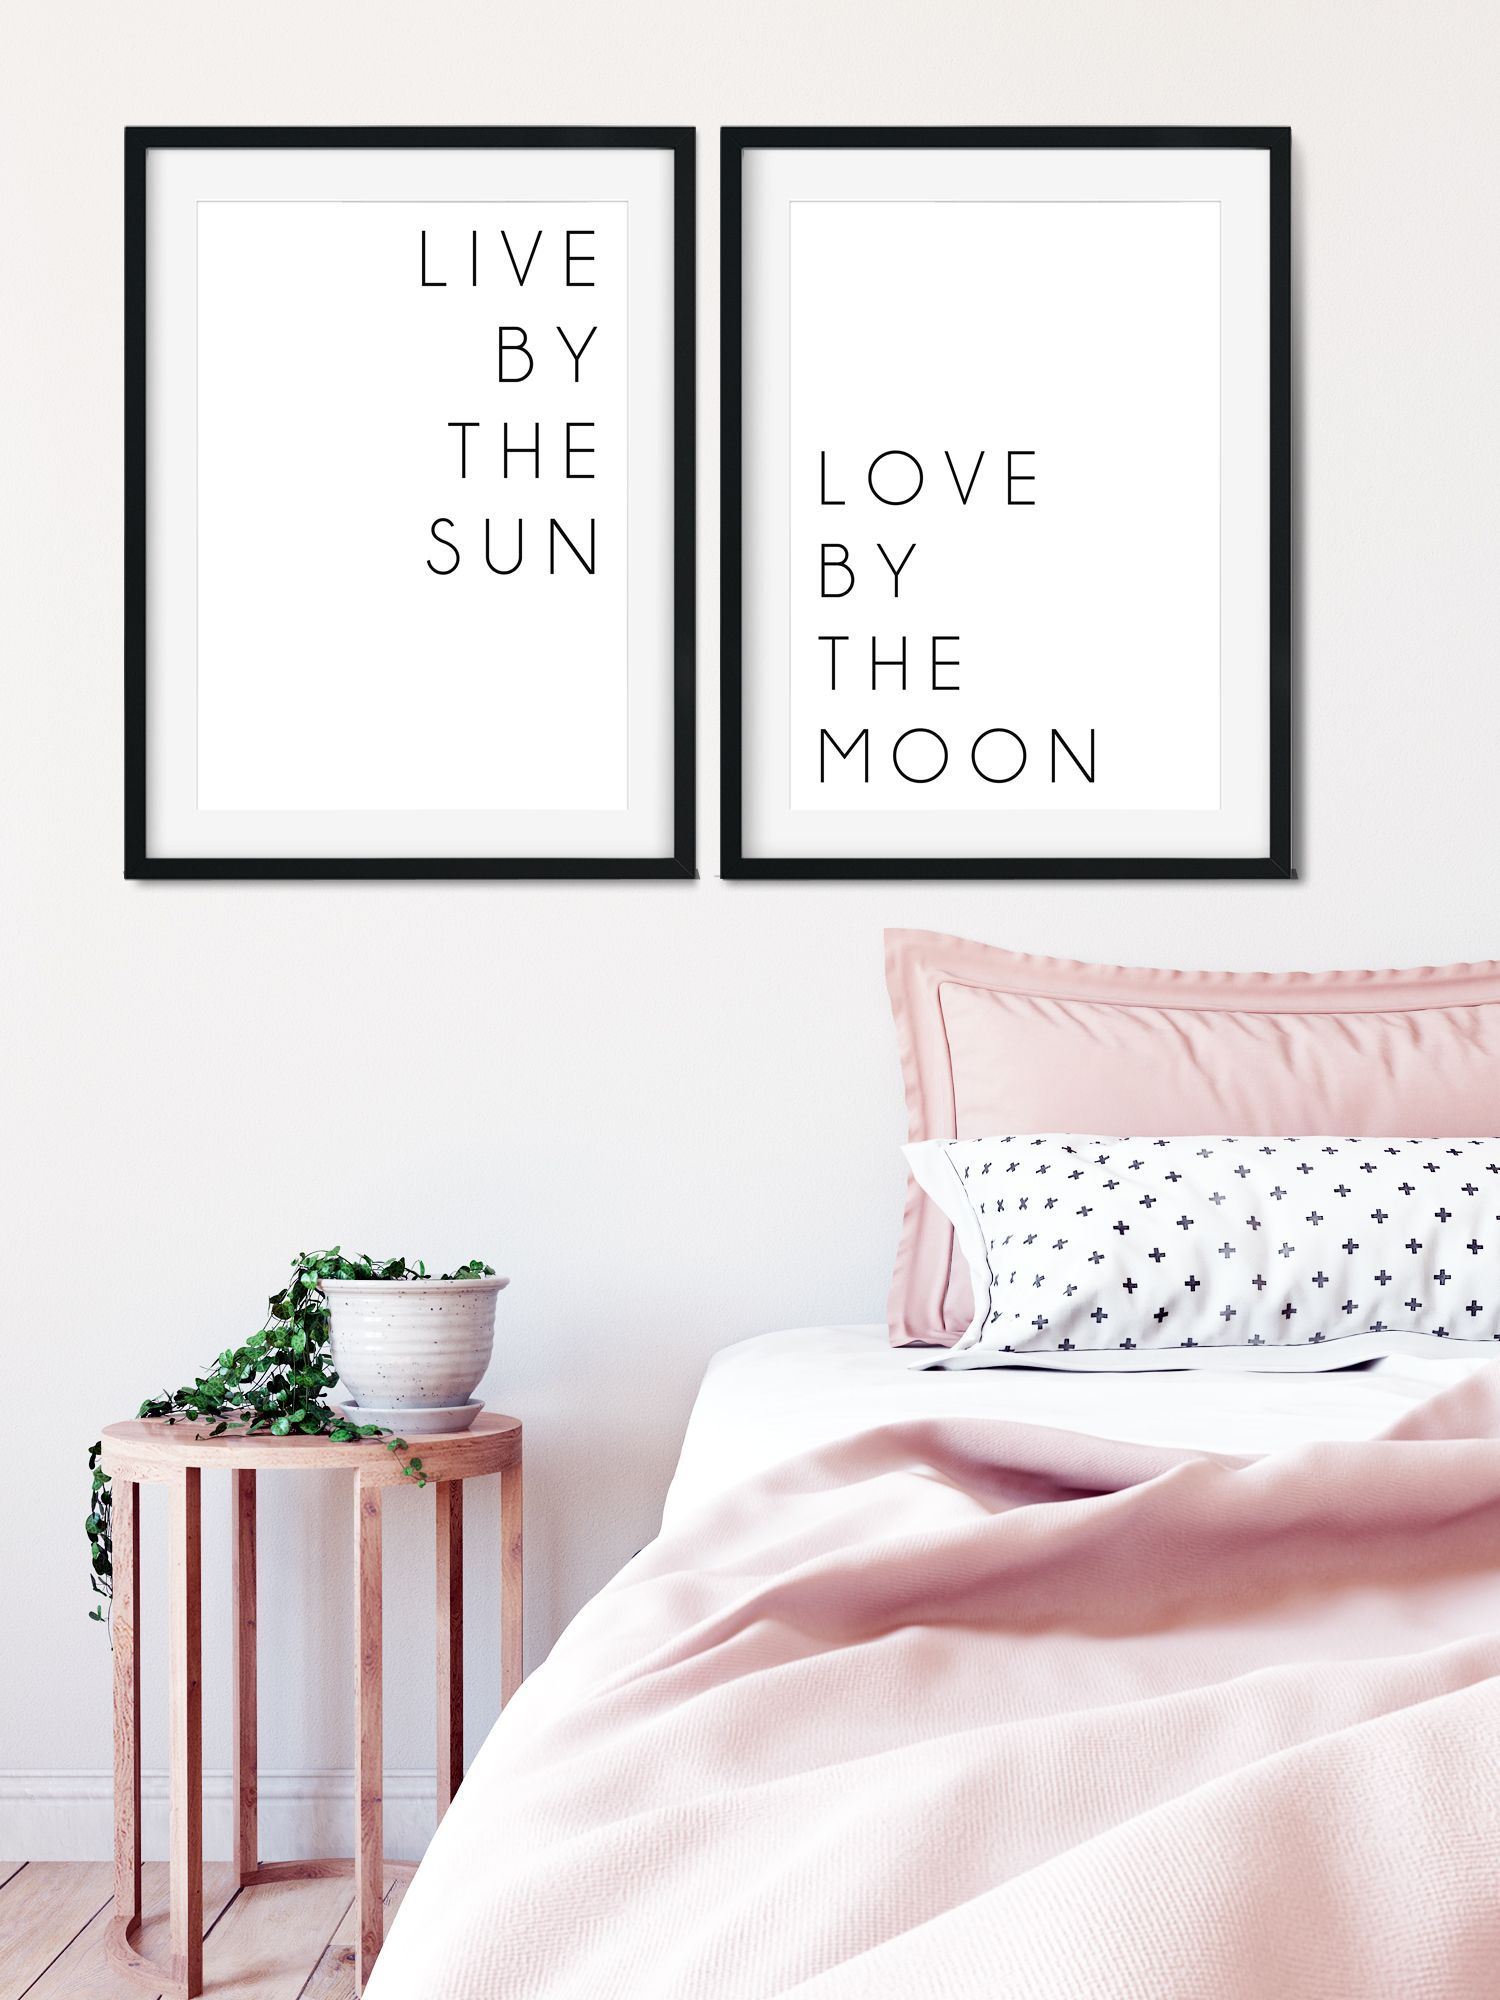 Live By The Sun Art Print Above Bed Decor Above Bed Set Of 2 Prints Trending Now Above Bed Art Large Posters Extra Large Wall Art Romantic Bedroom Design Wall Decor